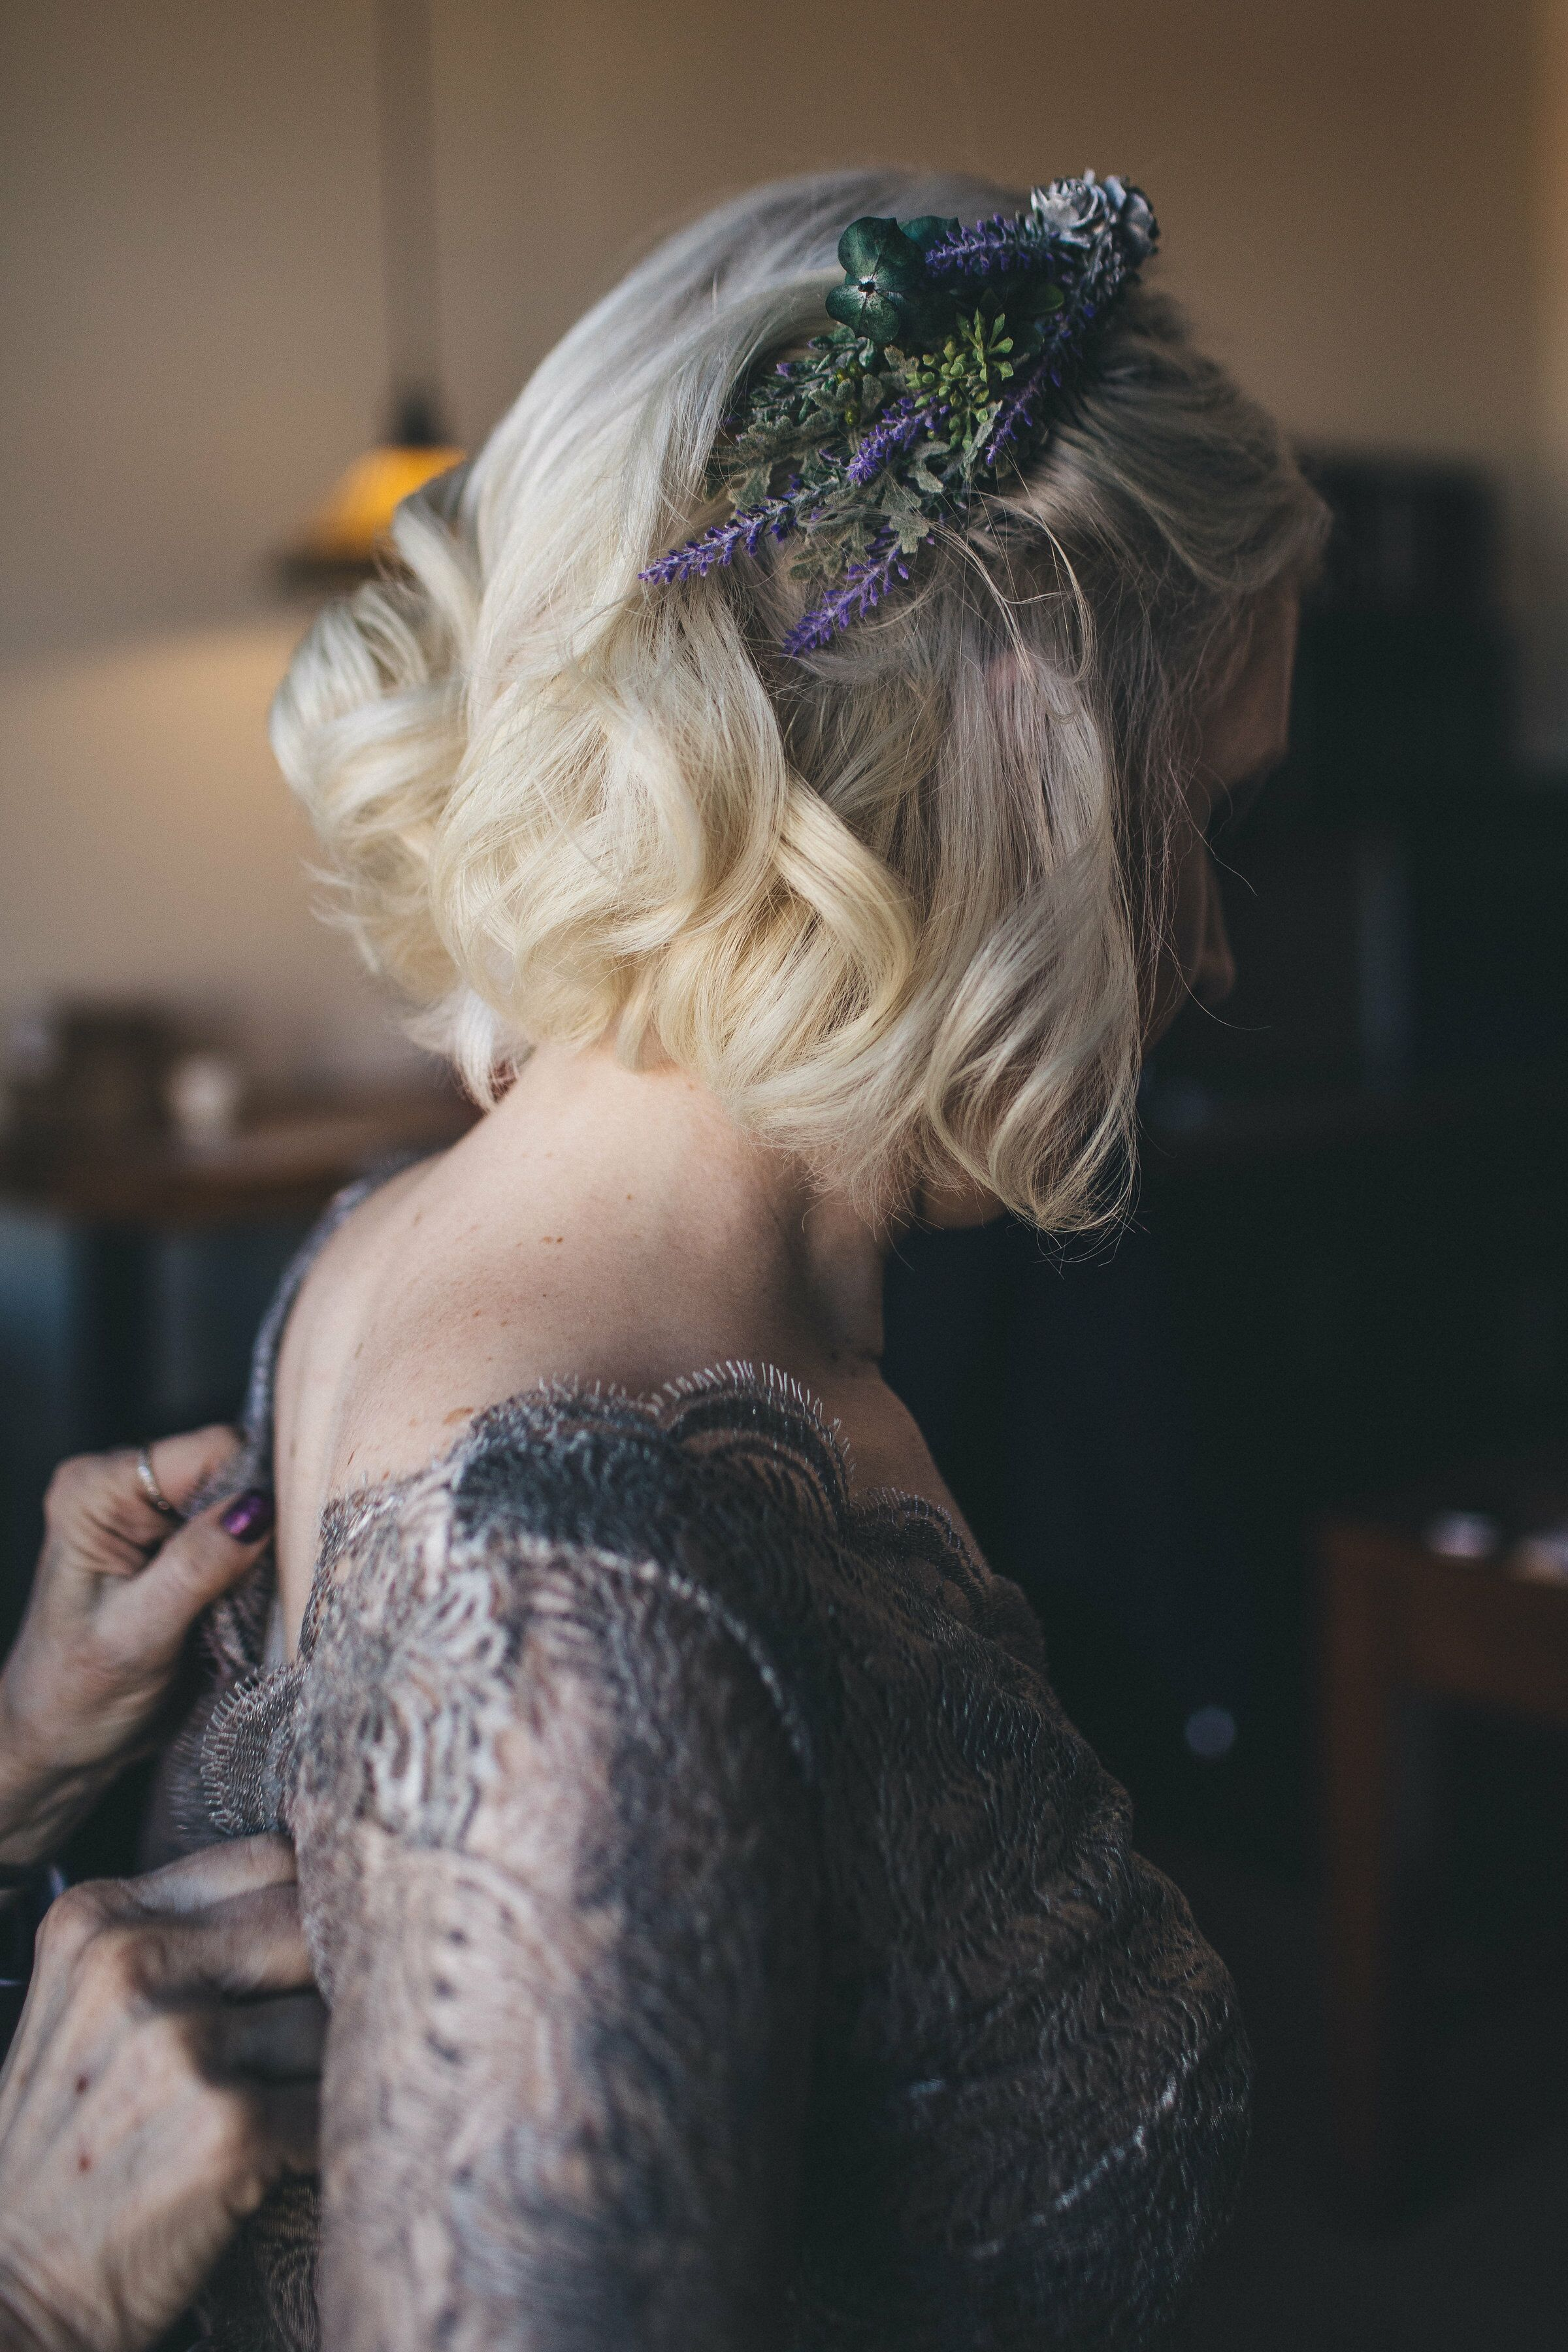 beauty salons in appleton, wi - the knot